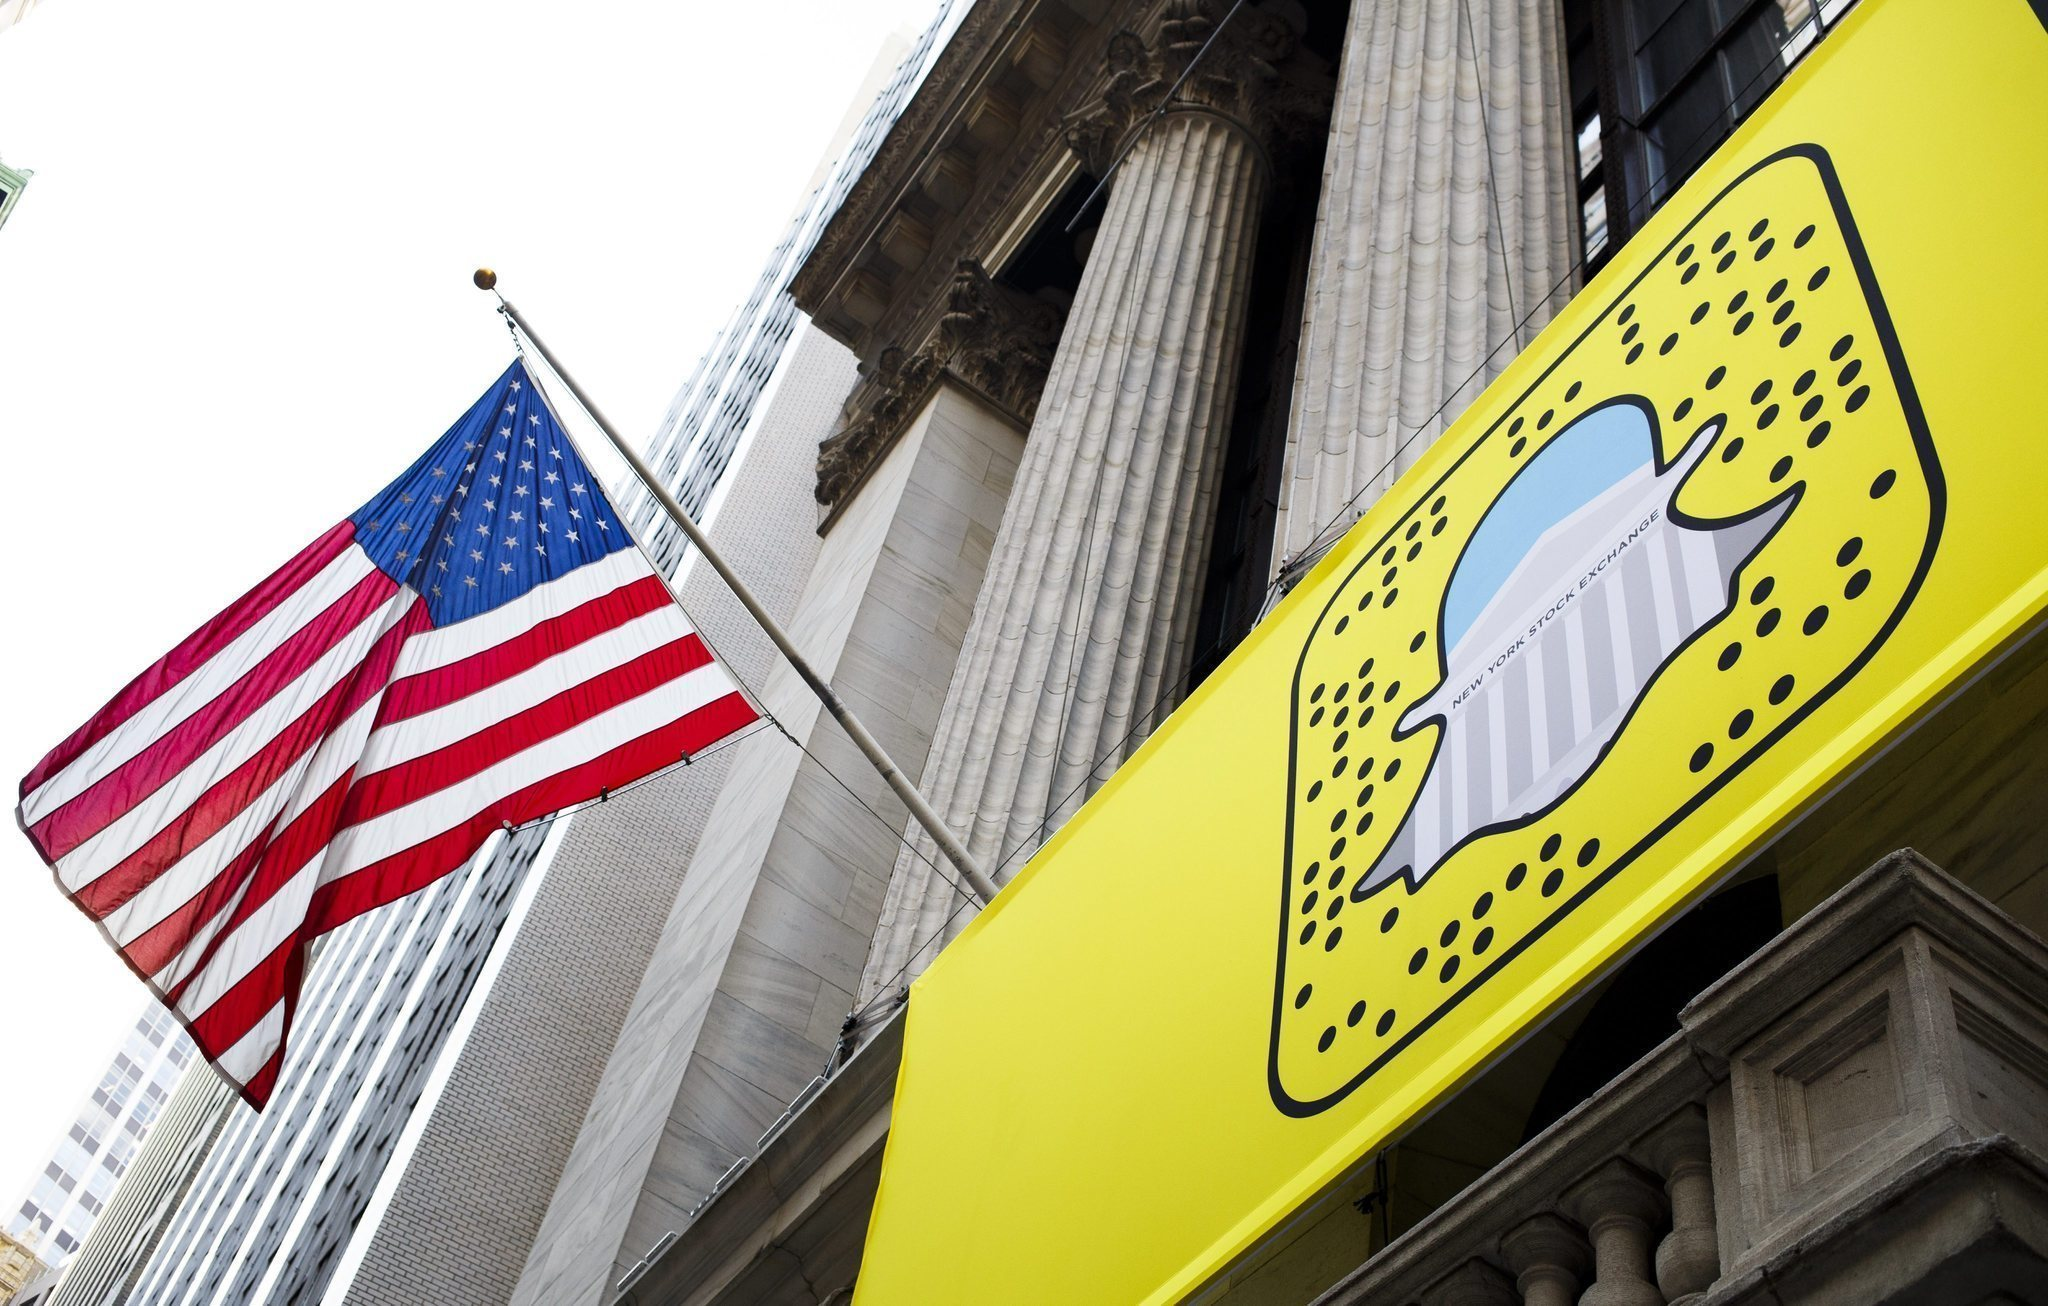 Snapchat firm reportedly closing in on 25 billion valuation for snapchat firm reportedly closing in on 25 billion valuation for ipo la times ccuart Gallery